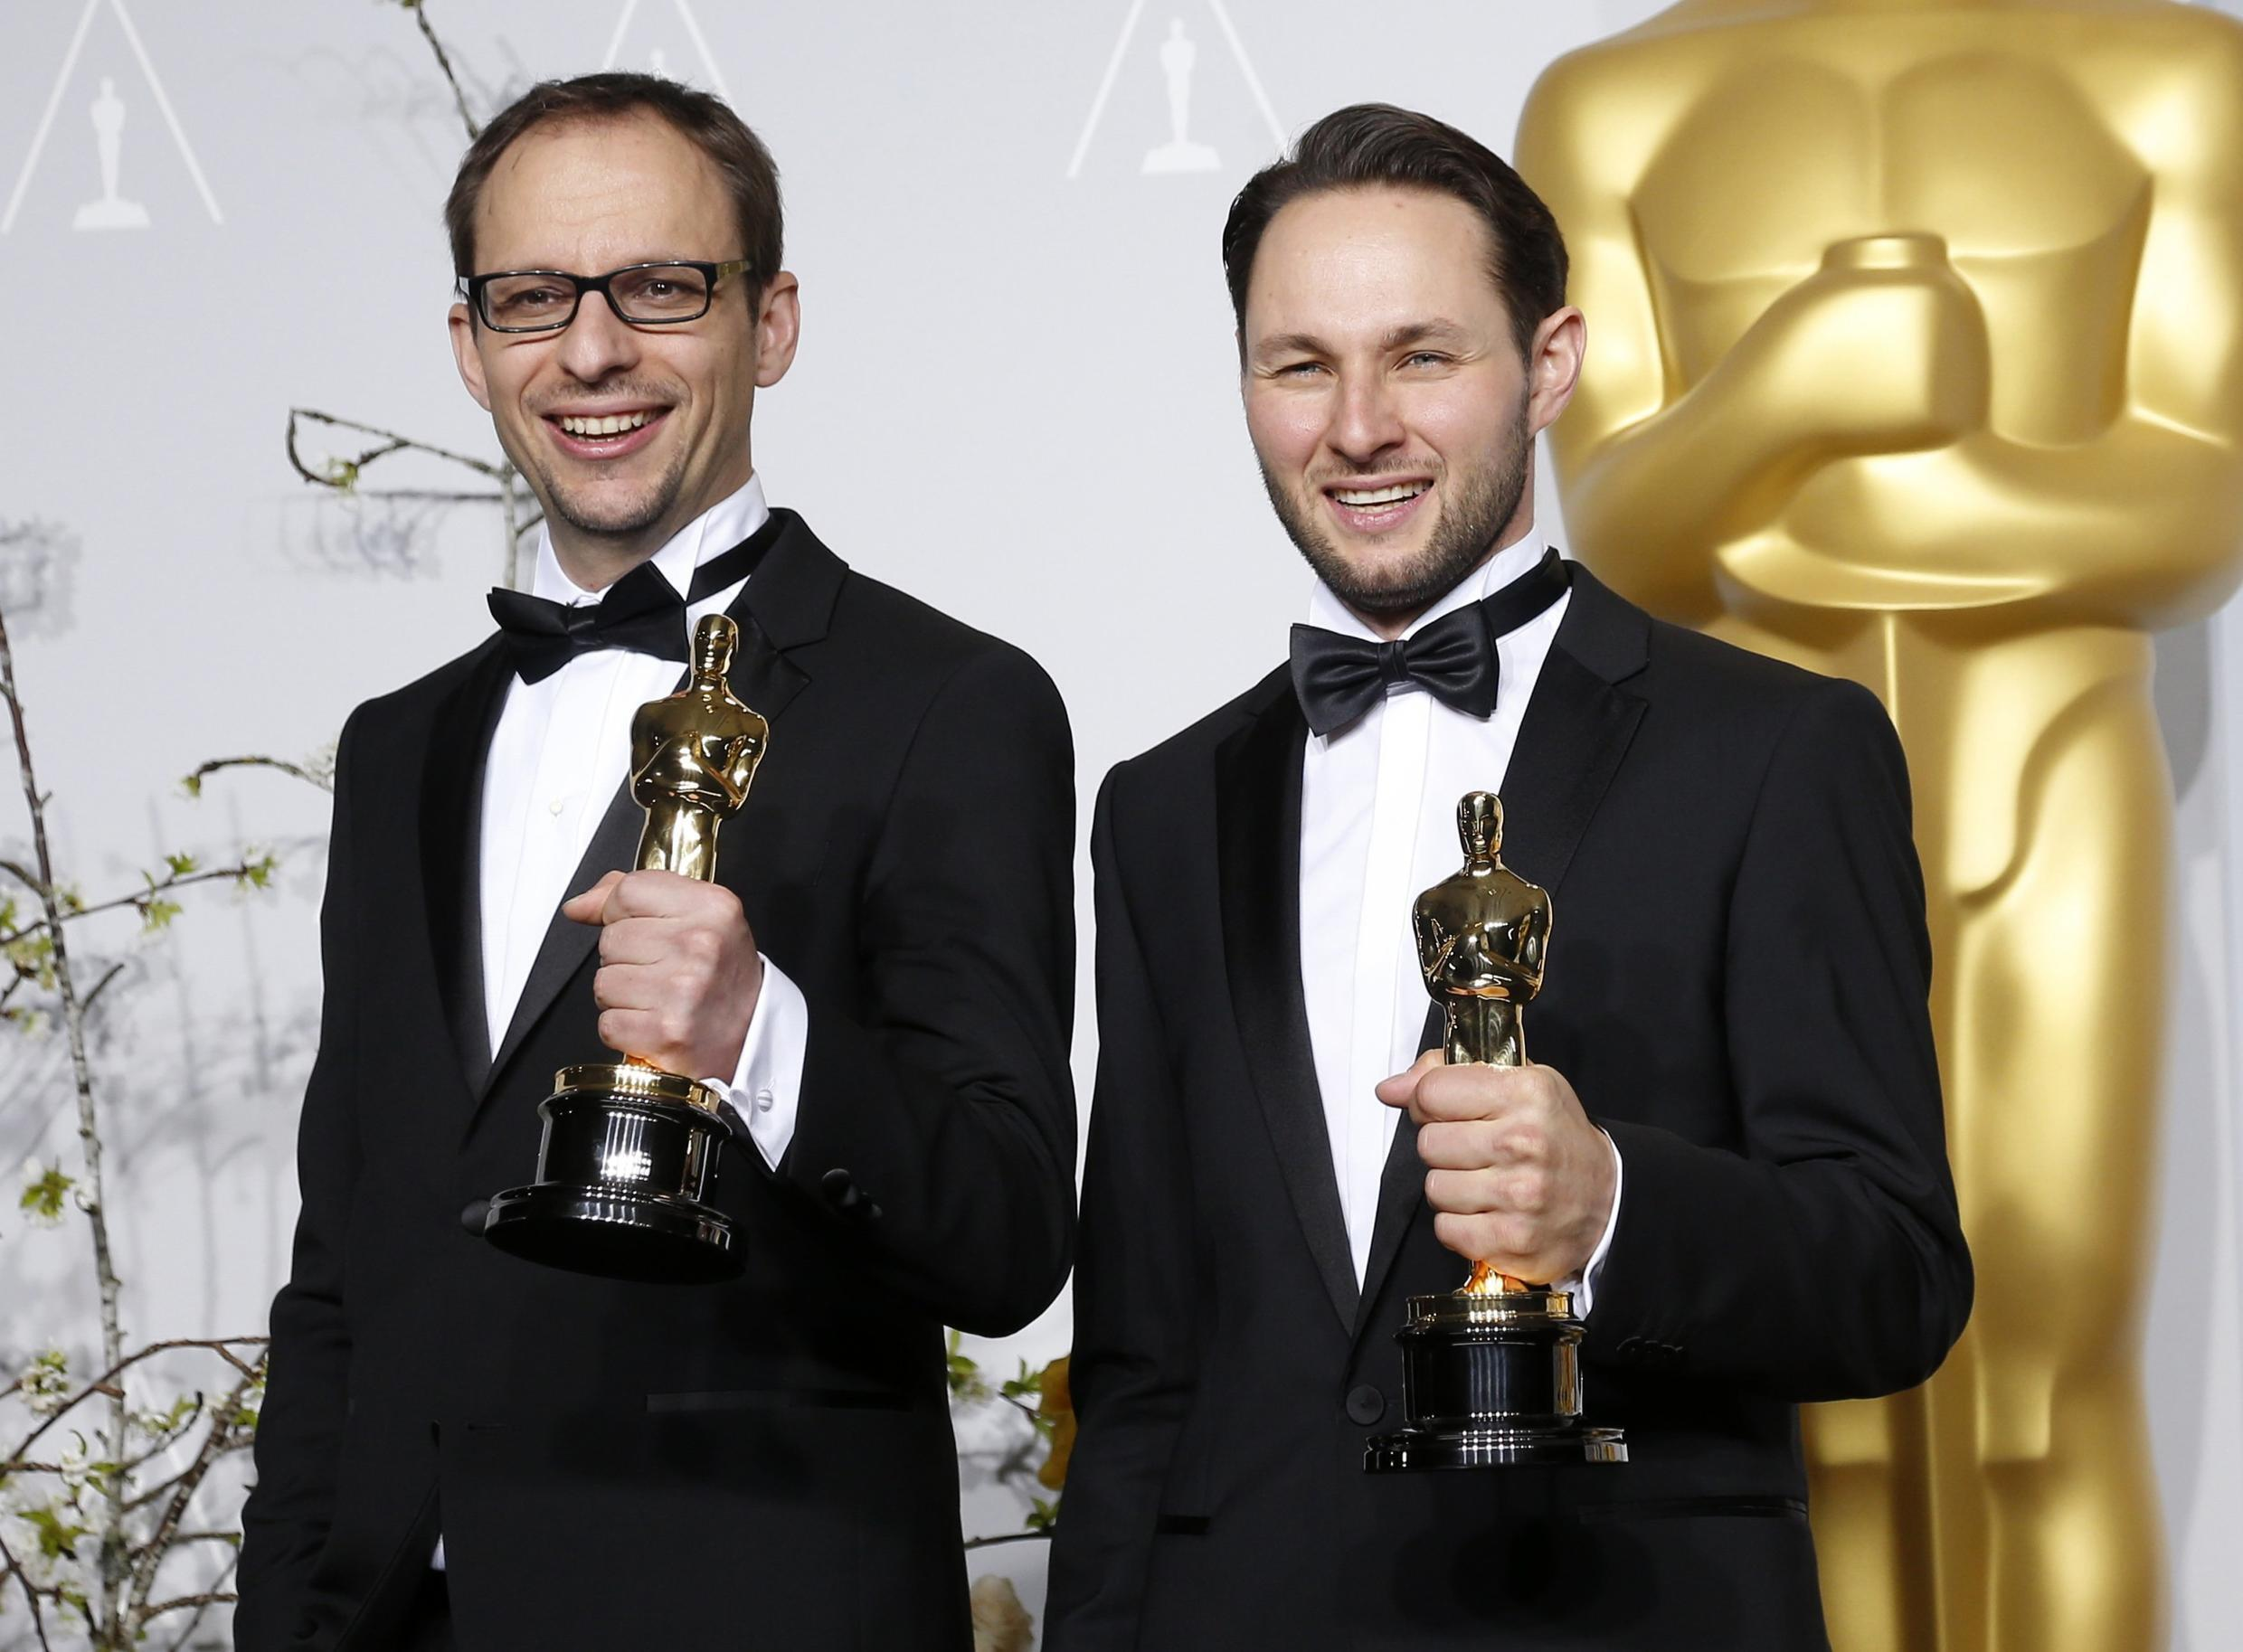 """Laurent Witz and Alexandre Espigares with their award for best animated short film """"Mr. Hublot""""."""